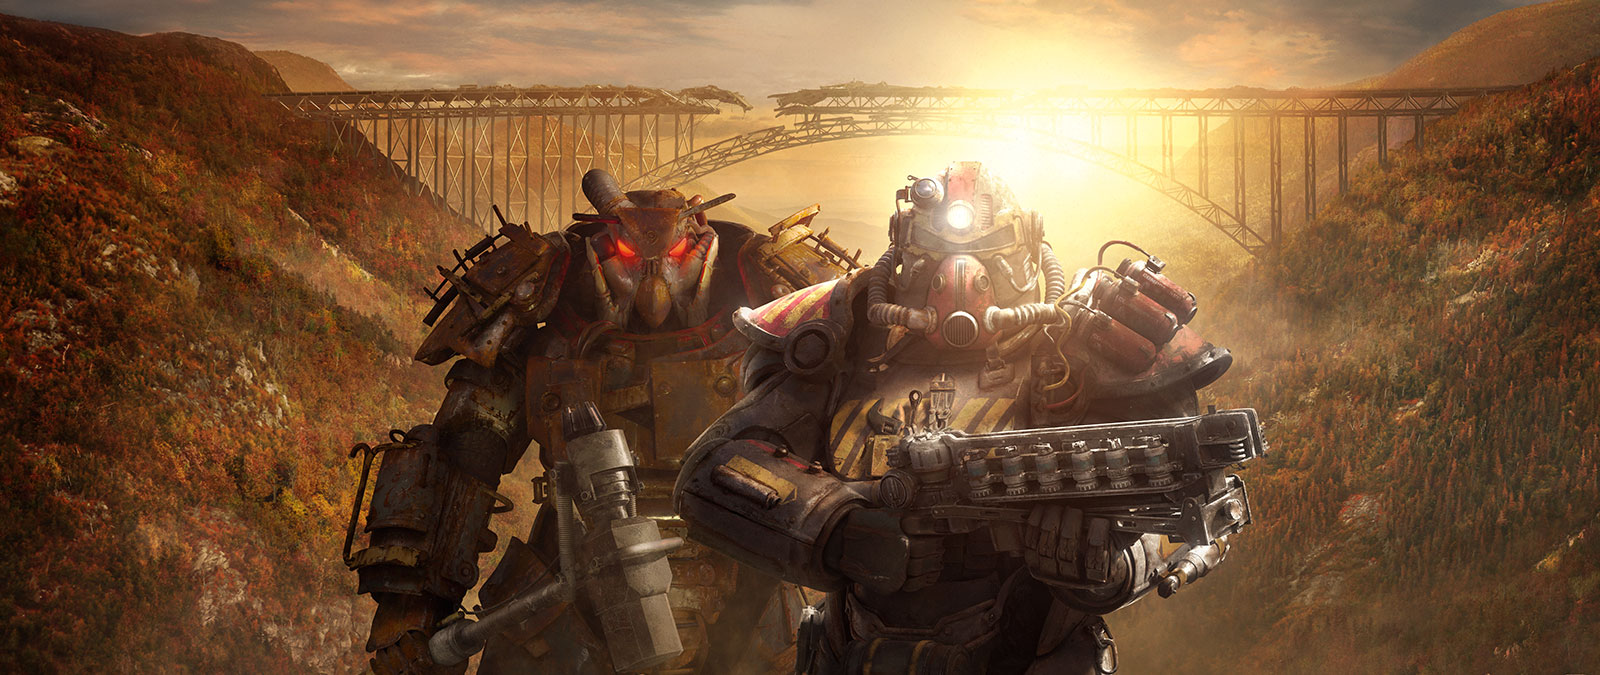 People in two sets of different Power Armor stand in front of dilapidated train tracks connecting two hills